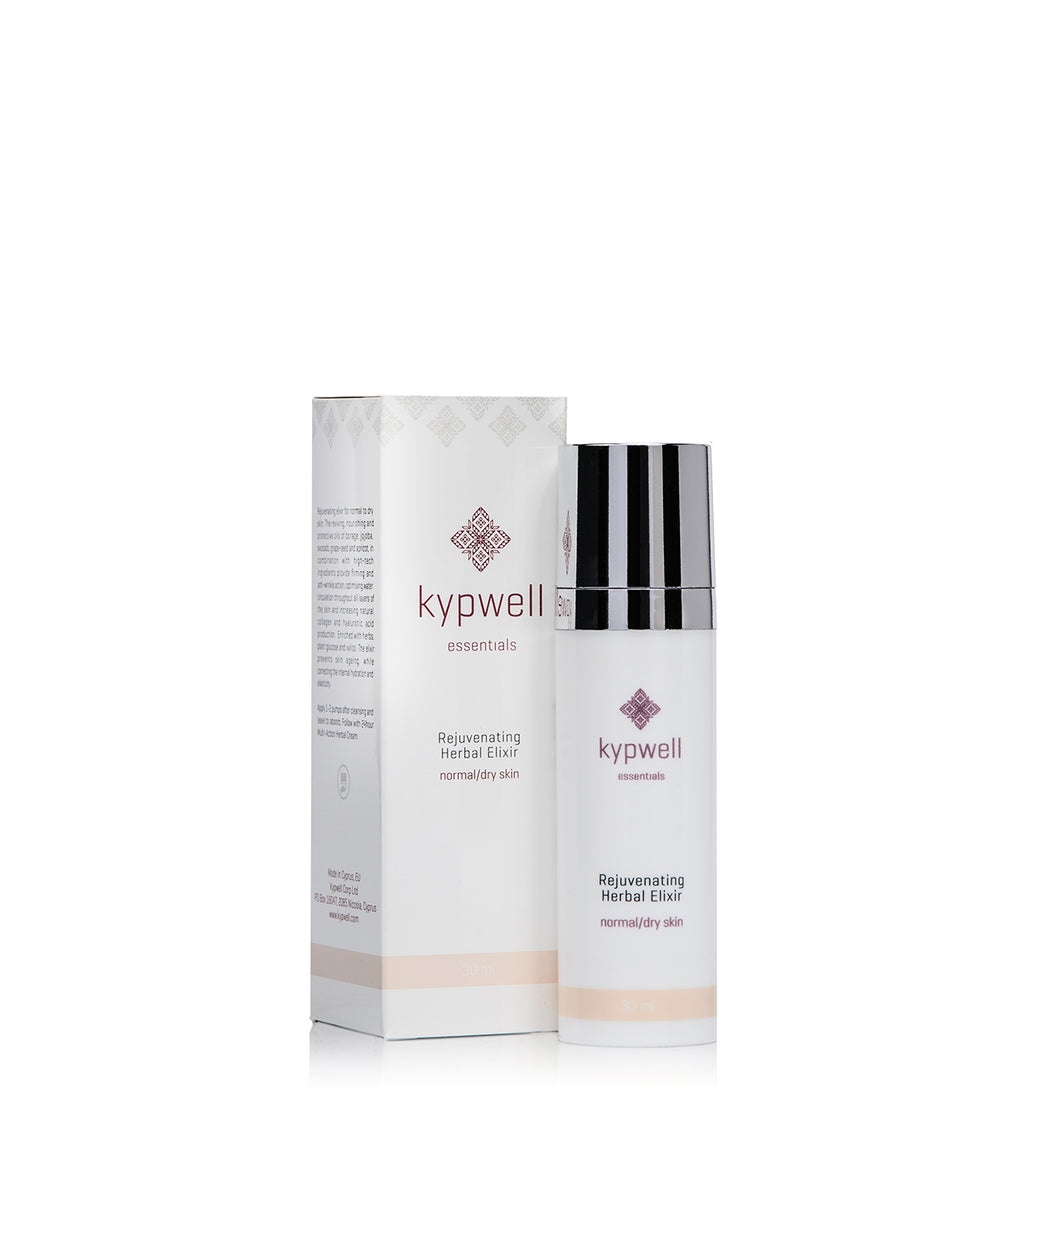 Kypwell Dynamic Rejuvenating Beauty Mask - 50ml - Origins of Beauty 'Guilt Free Beauty and Wellbeing'